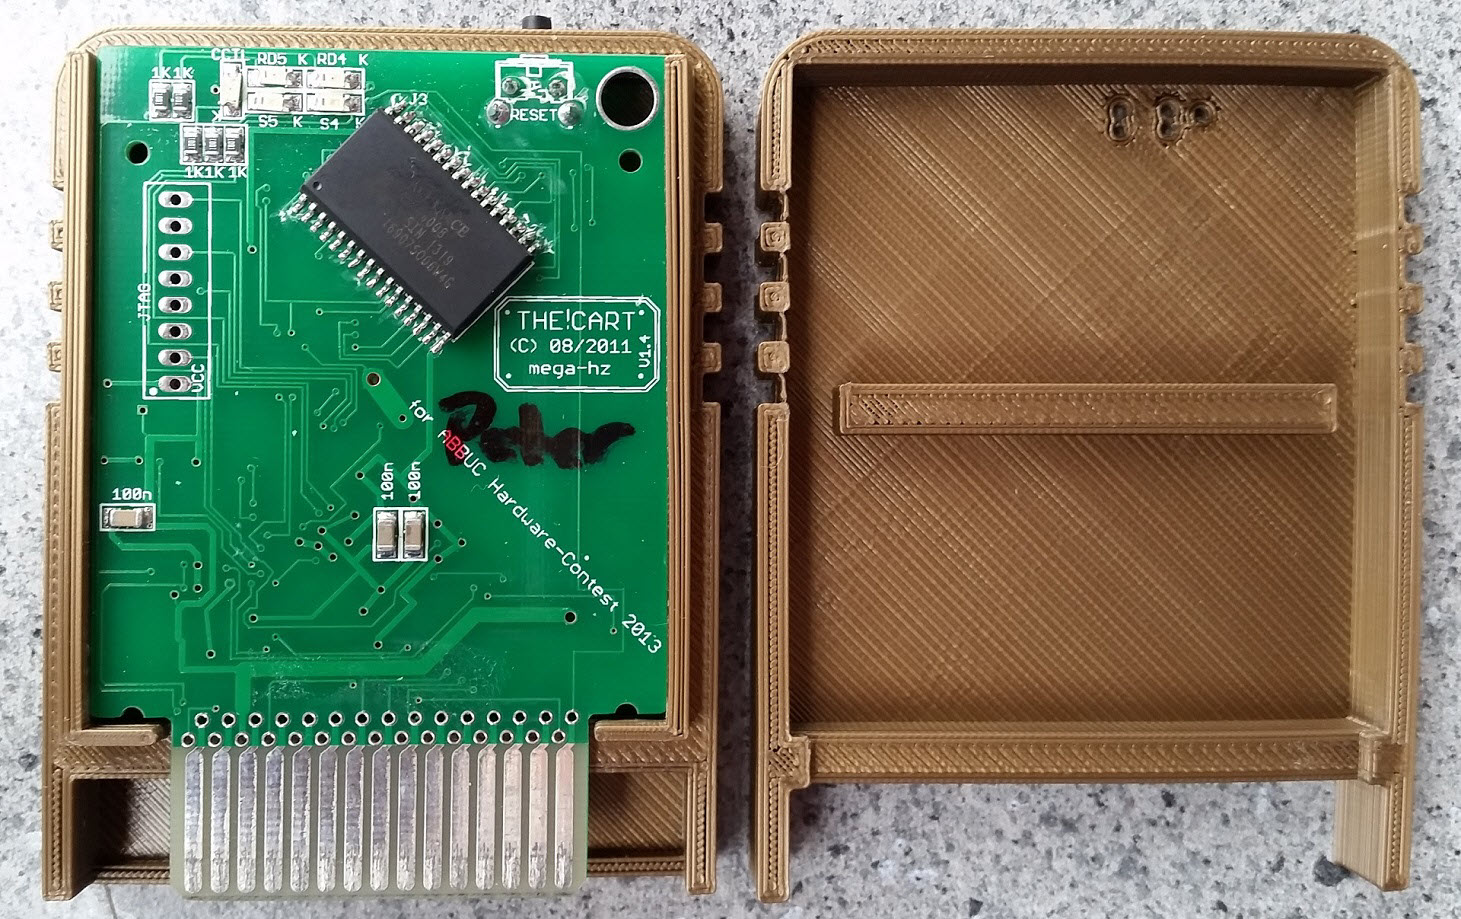 The!Cart Shell, opened, PCB fitted